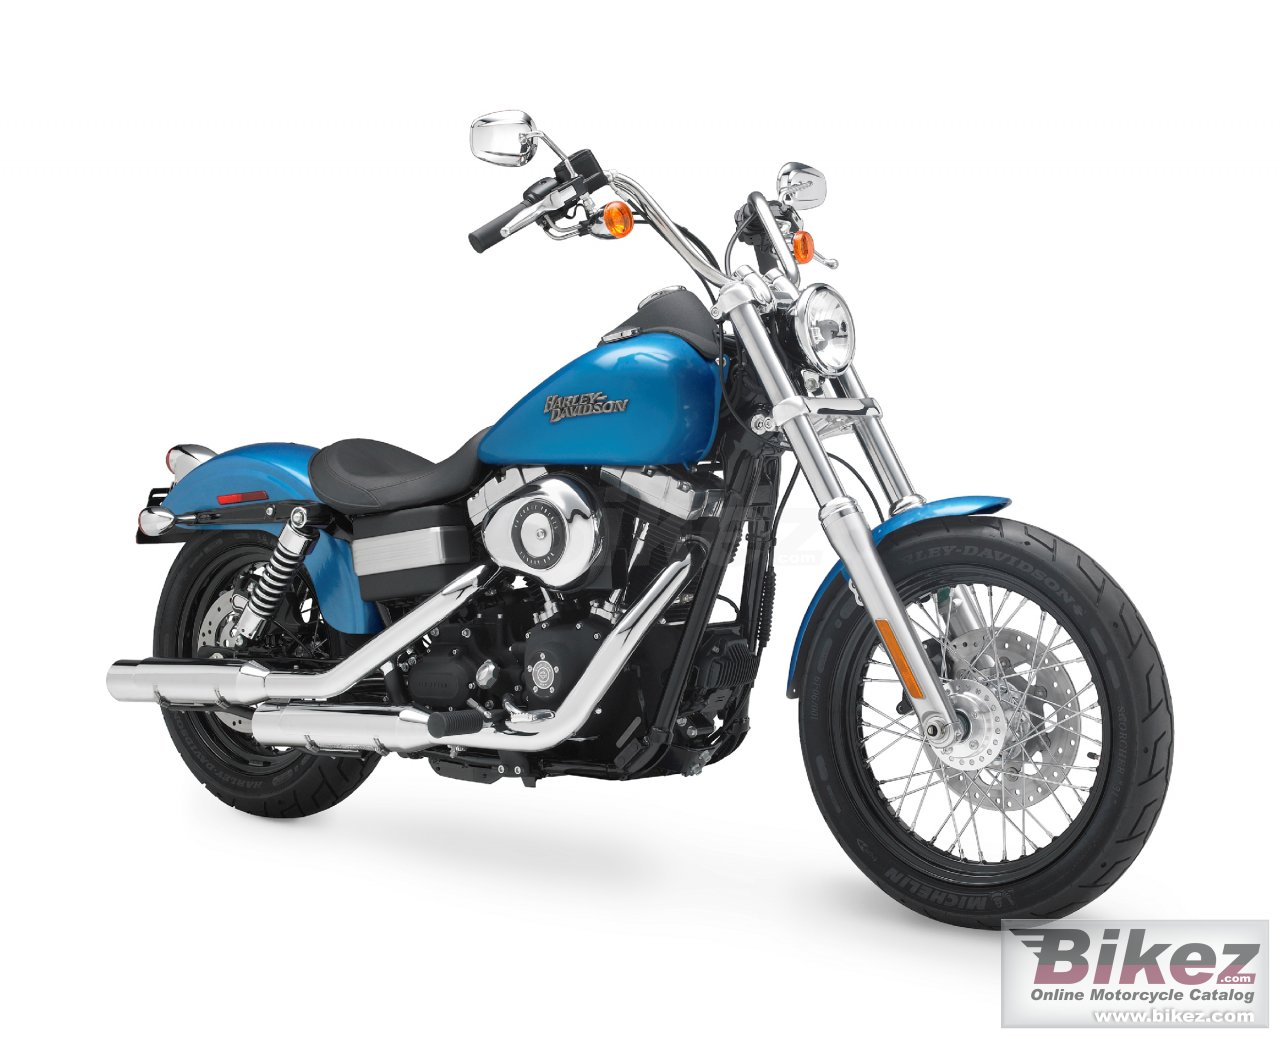 Big Harley-Davidson fxdb street bob picture and wallpaper from Bikez.com